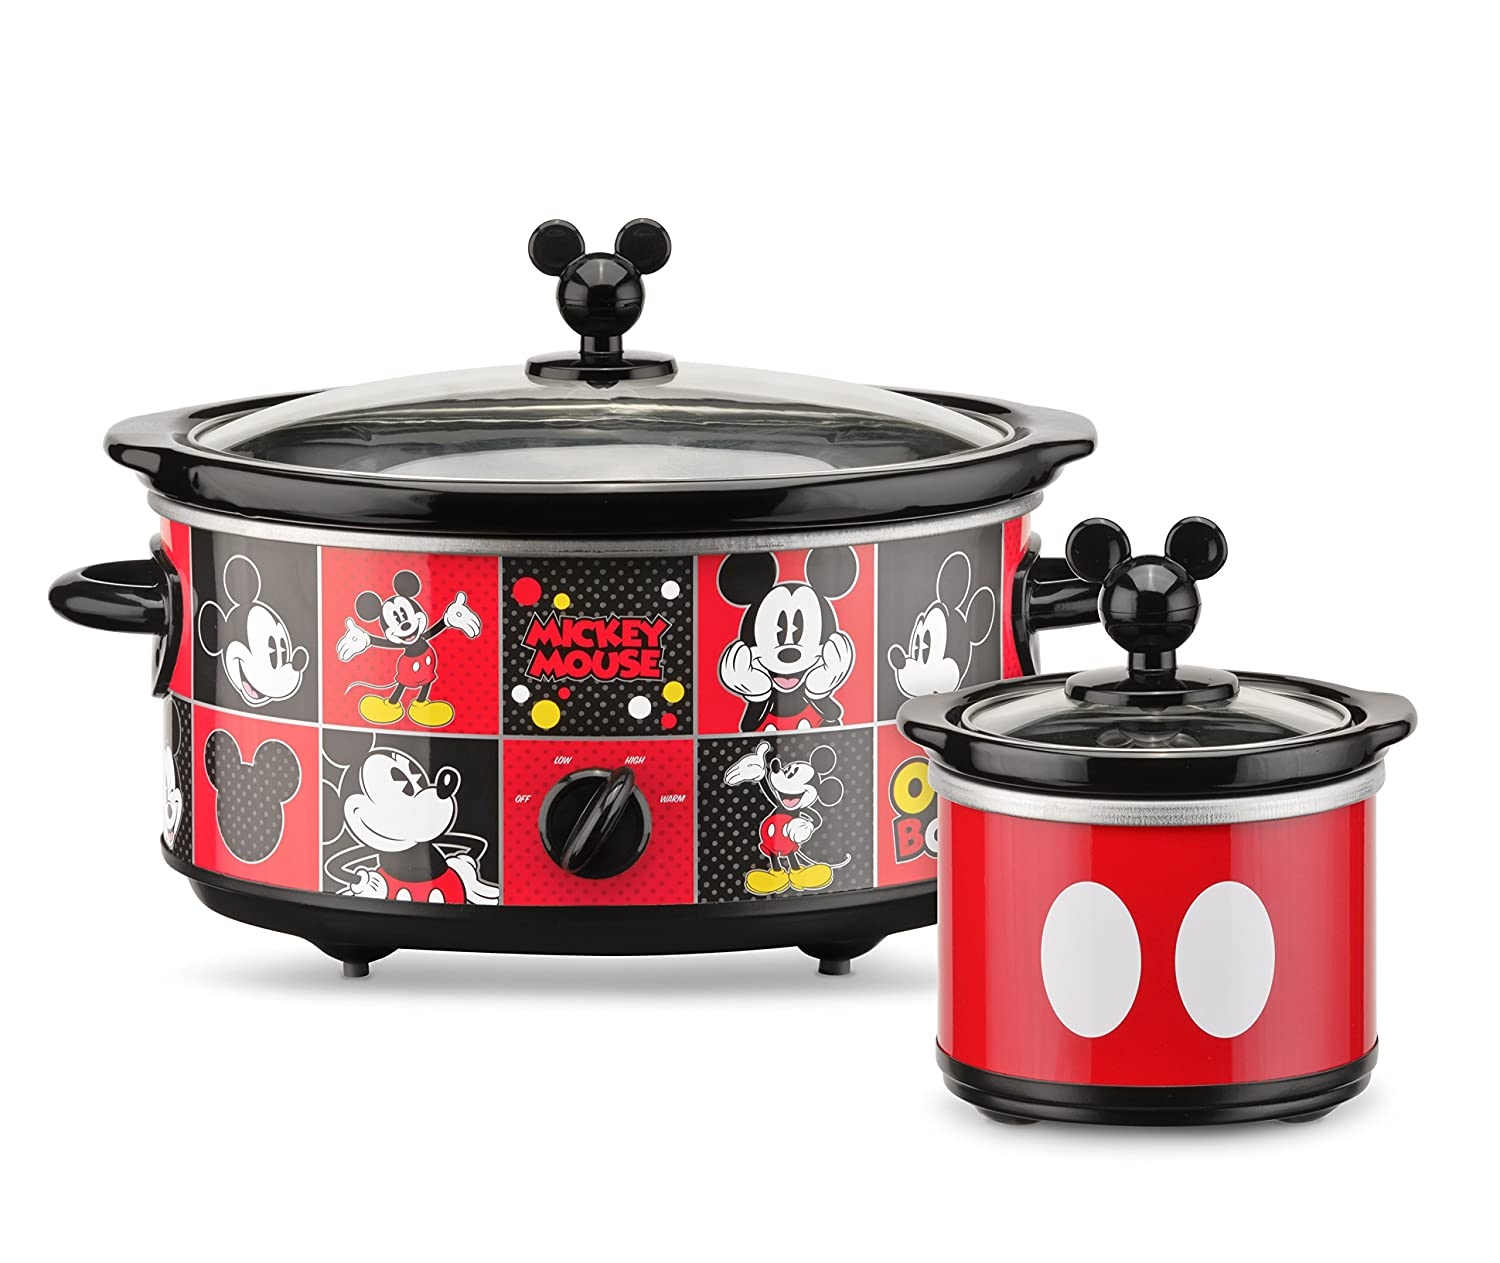 Disney DCM-502 Mickey Mouse Oval Slow Cooker with 20-Ounce Dipper, 5-Quart, Red/Black Select Brands Inc